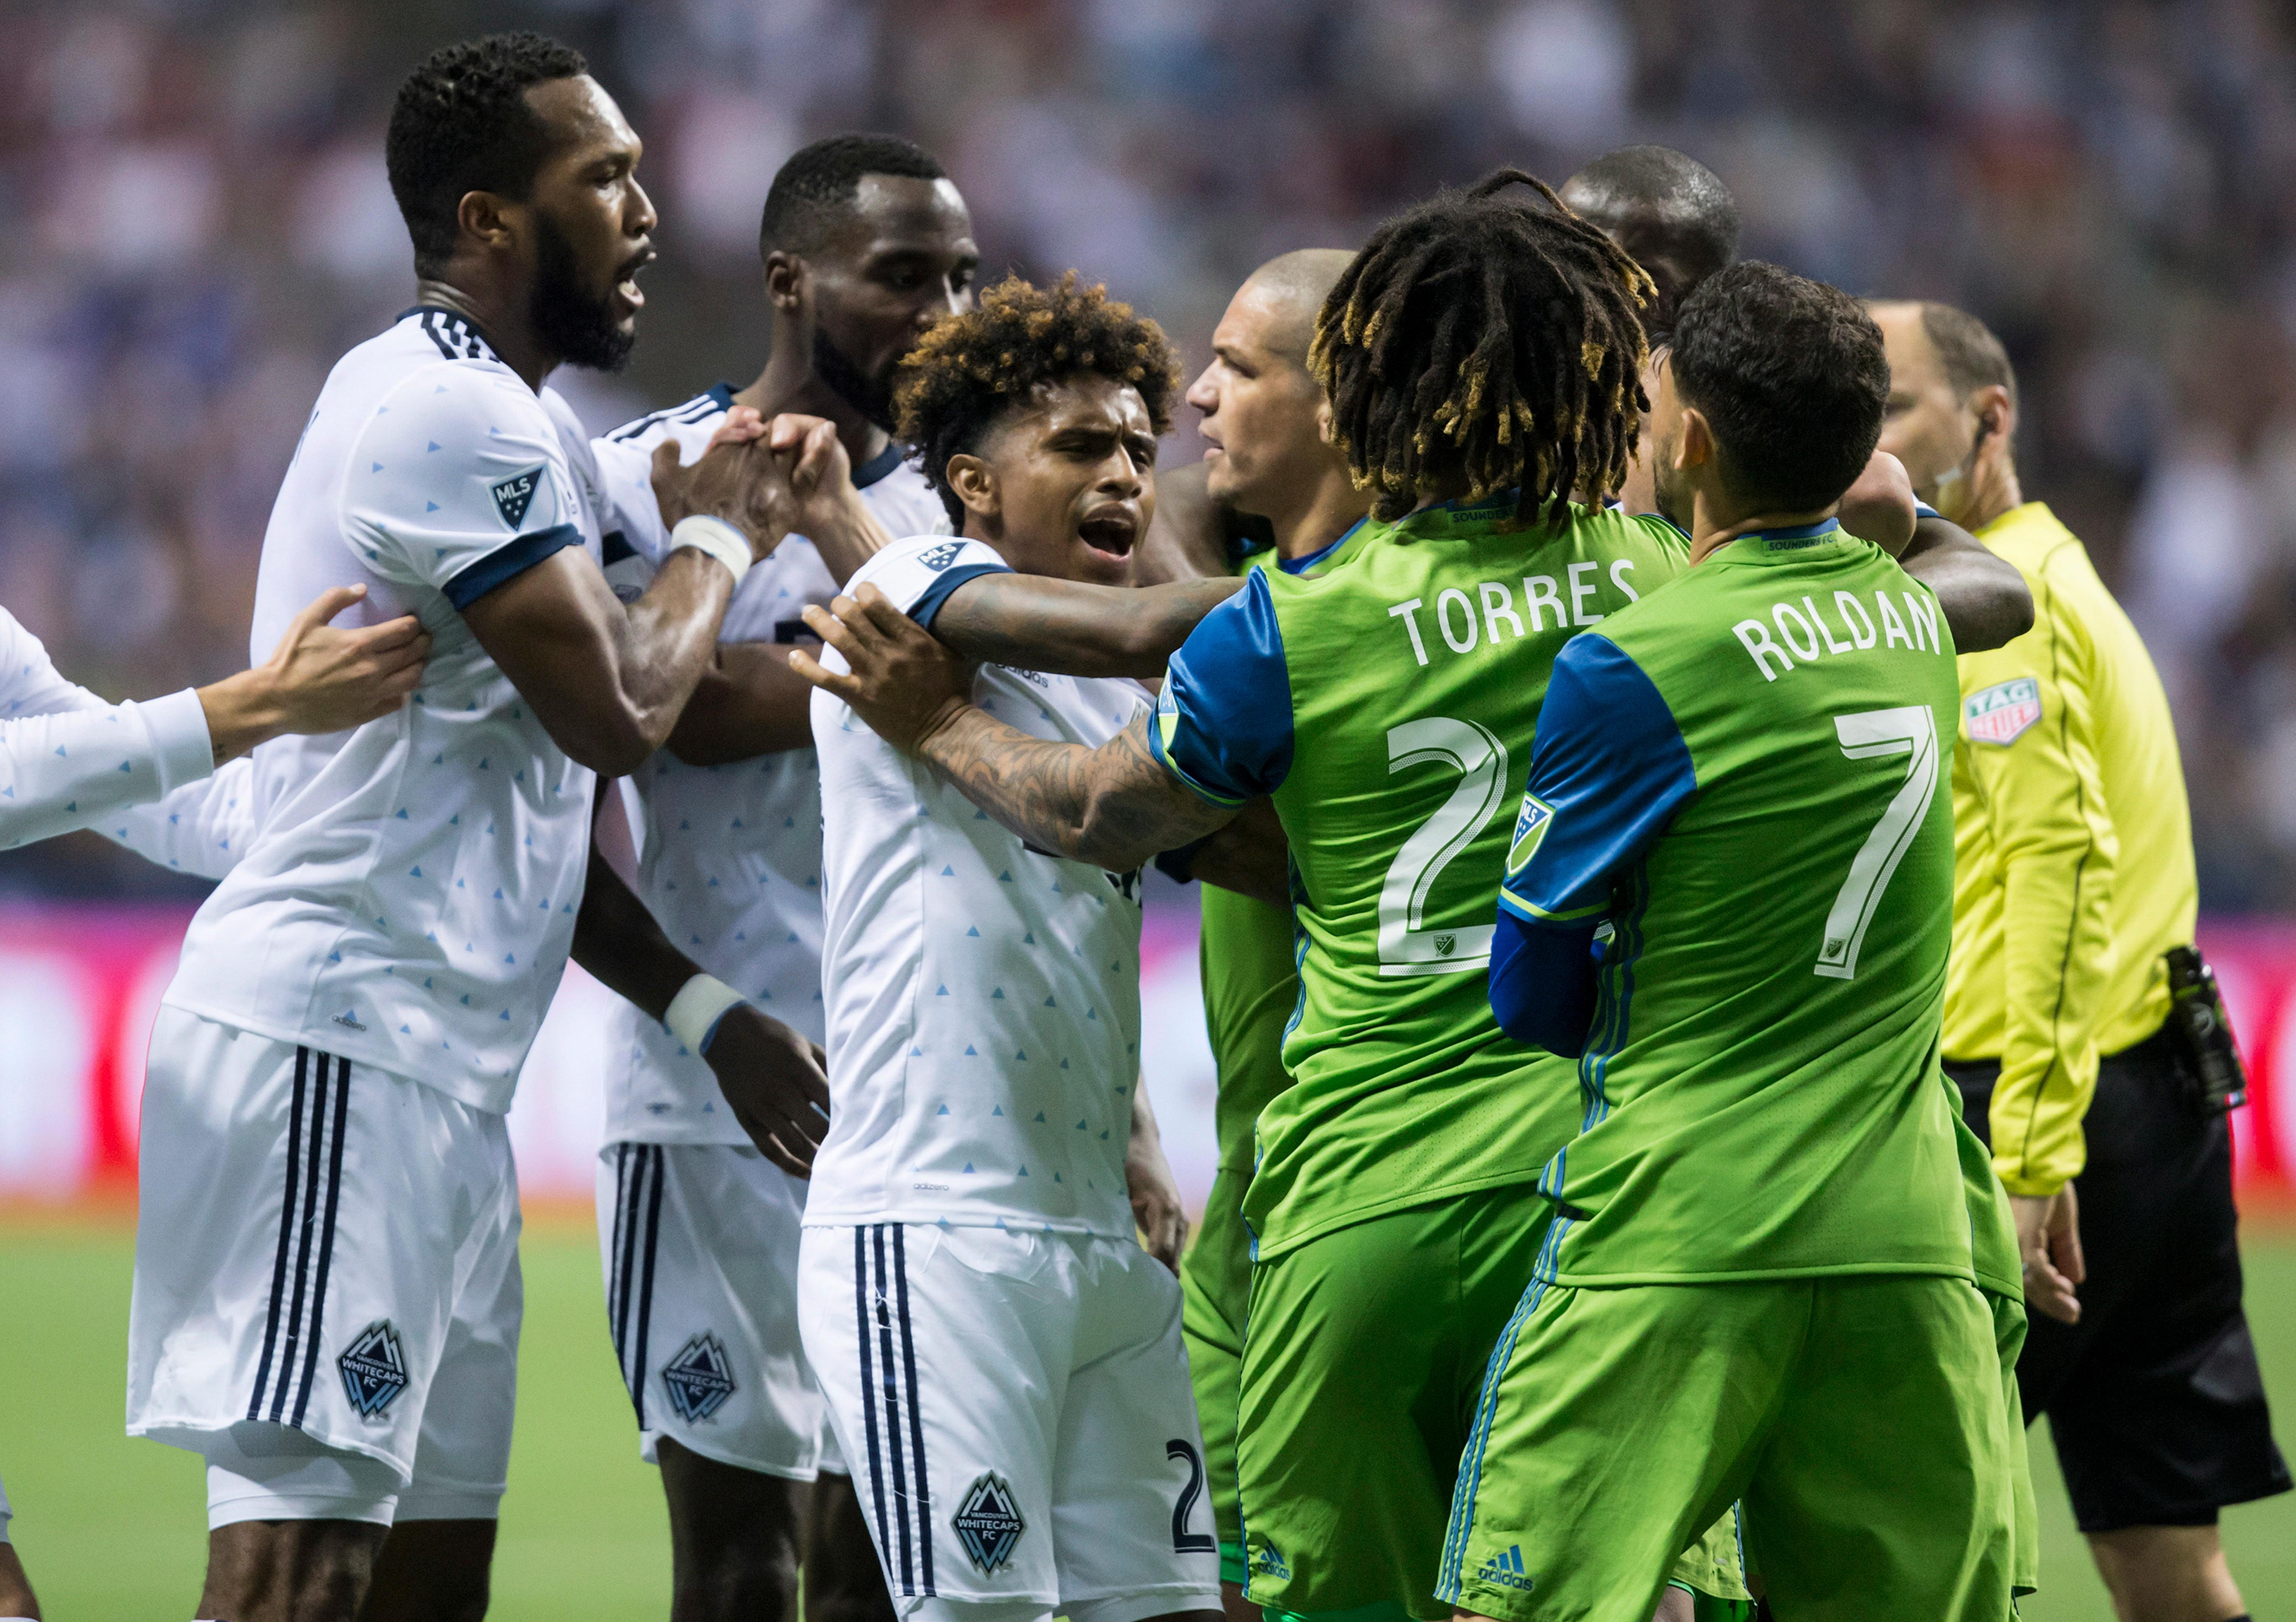 Vancouver Whitecaps' Kendall Waston, left, and Yordy Reyna, center left, get into a scuffle with Seattle Sounders' Osvaldo Alonso, center right, and Roman Torres during the second half of an MLS playoff soccer match in Vancouver, British Columbia, Sunday, Oct. 29, 2017. (Darryl Dyck/The Canadian Press via AP)